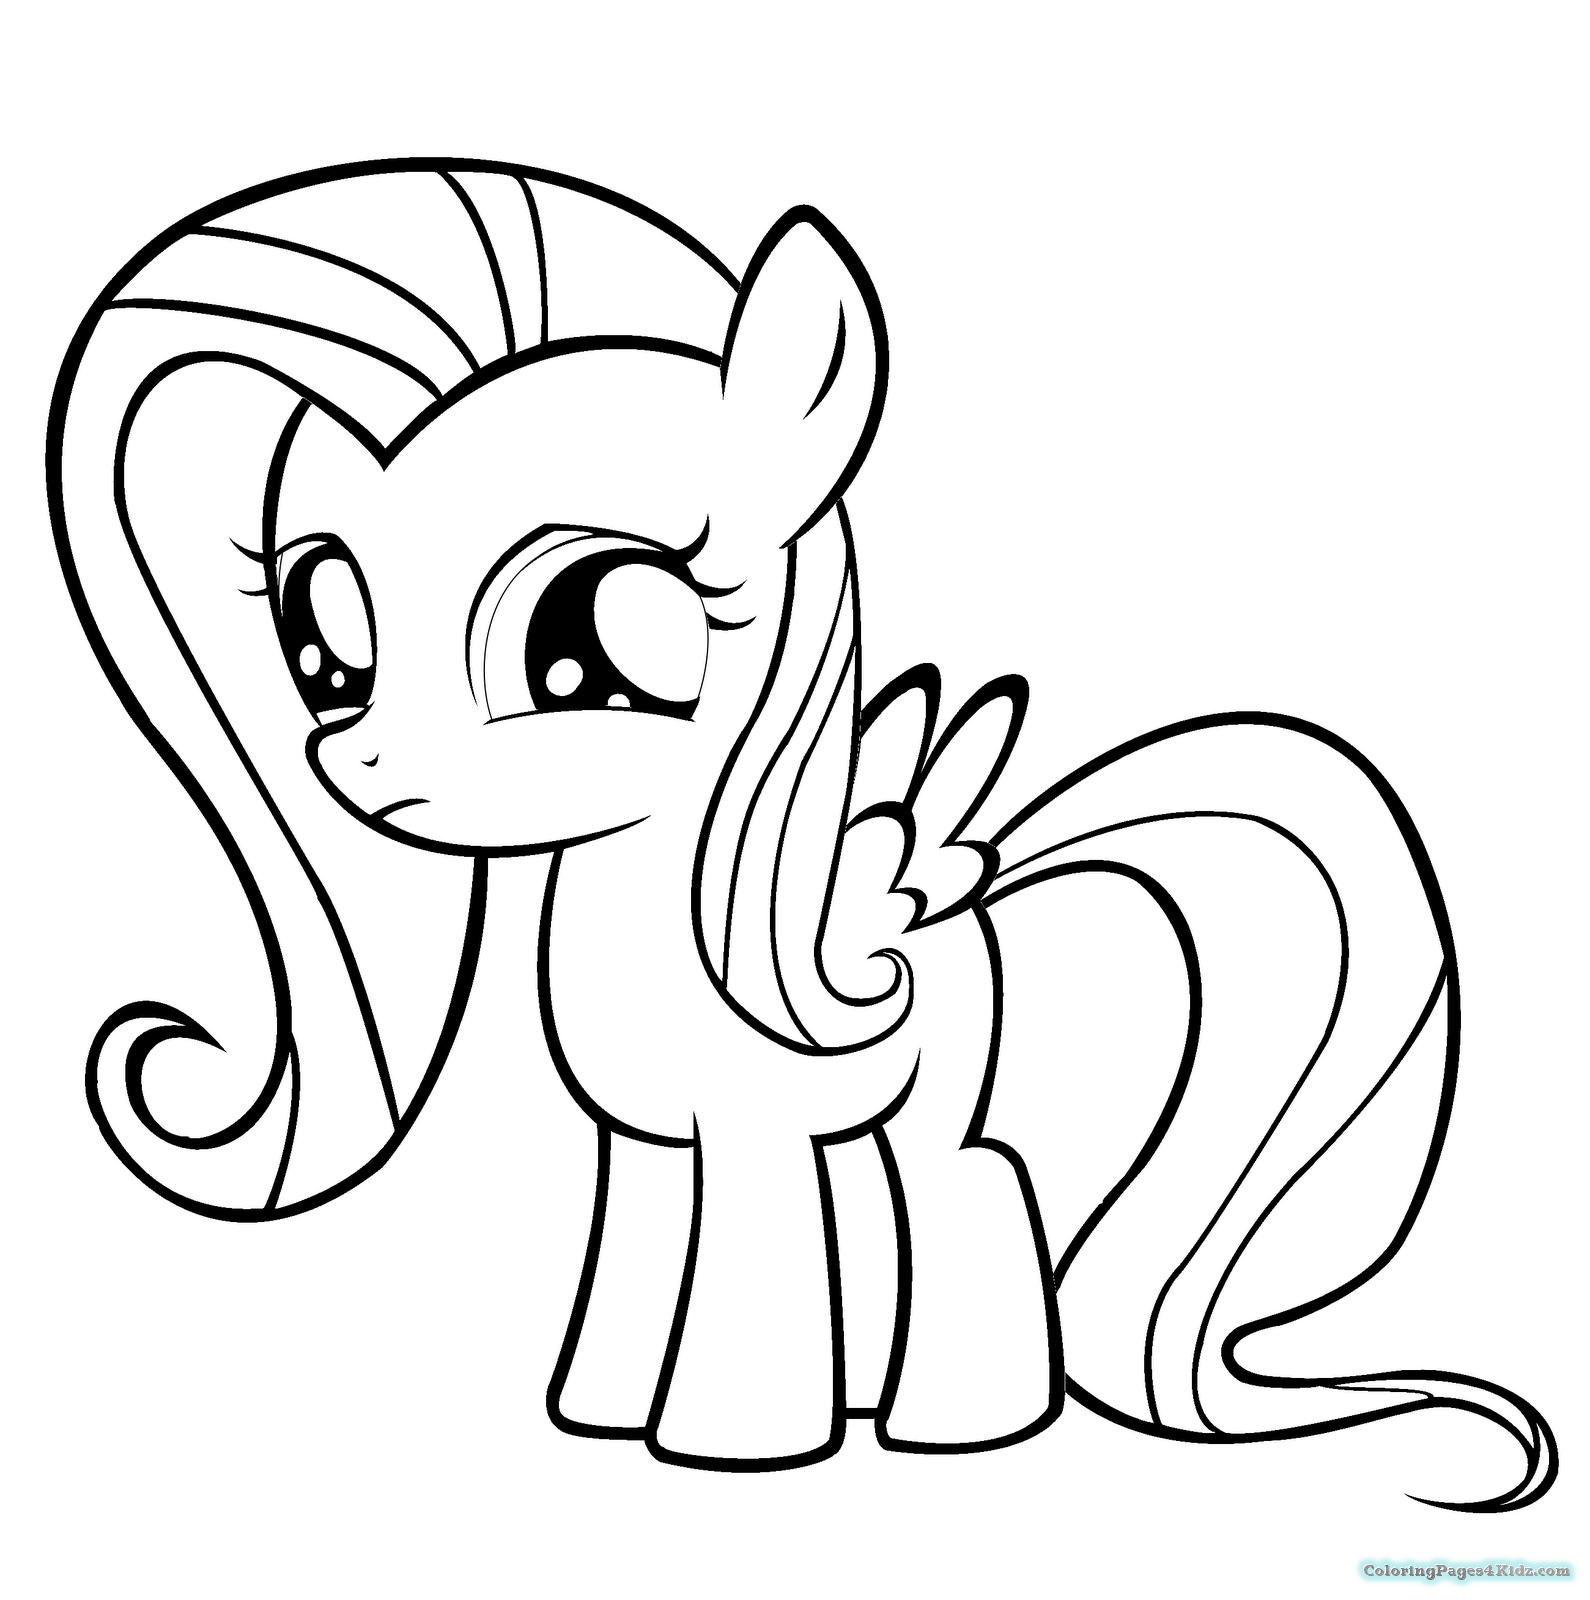 my little pony coloring pages fluttershy fluttershy coloring pages best coloring pages for kids pony my fluttershy little coloring pages